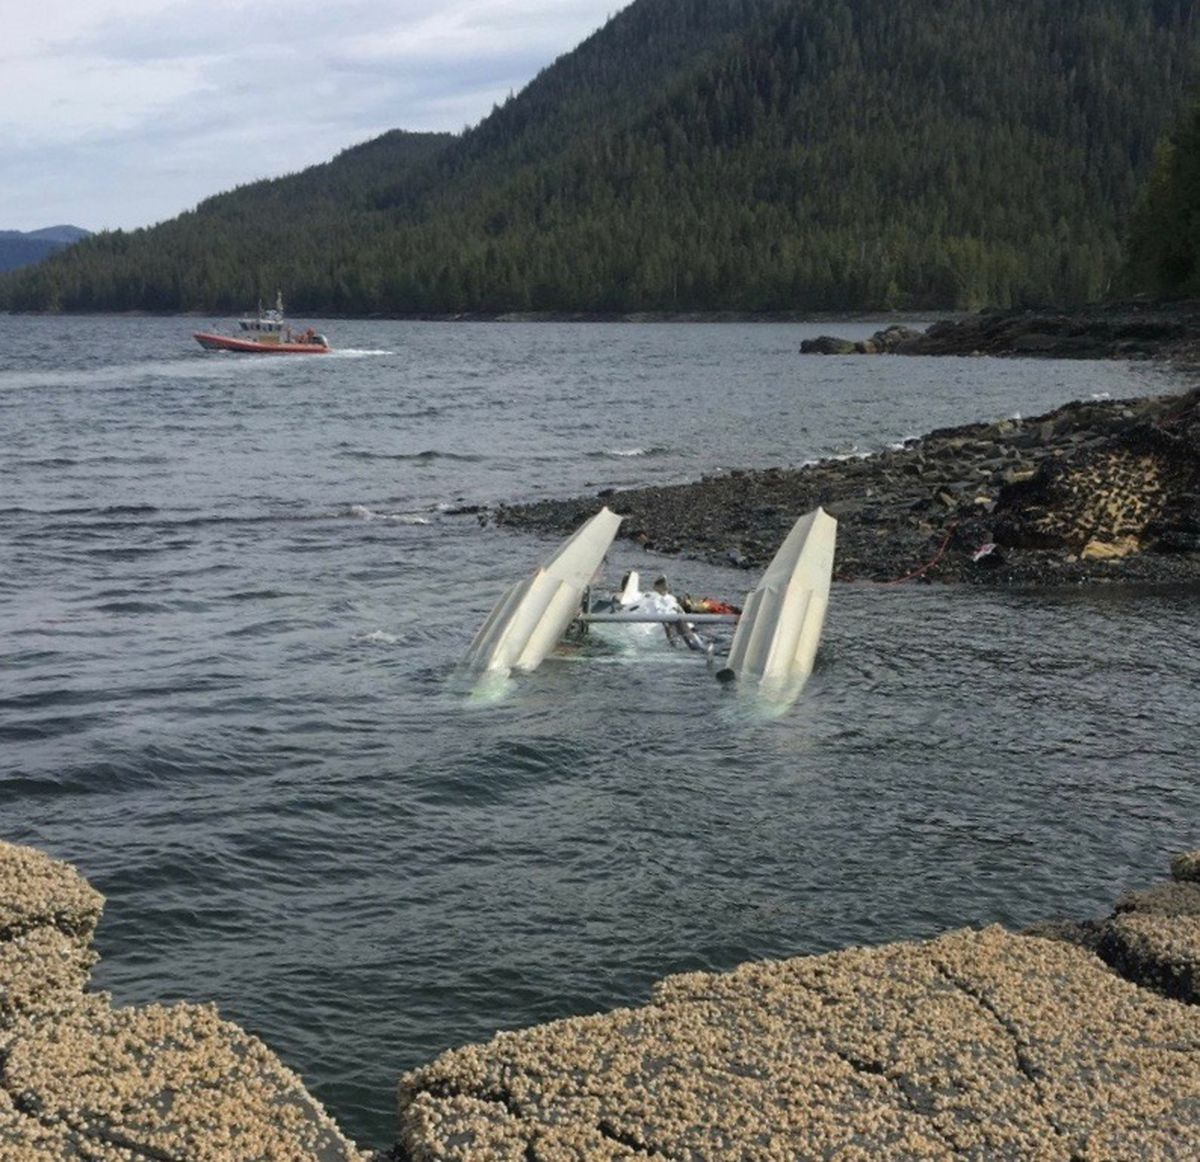 A Coast Guard Station Ketchikan 45-foot Response Boat-Medium crew searches for survivors from a downed de Havilland Beaver in George Inlet near Ketchikan, Alaska, Monday, May 13, 2019. The Beaver was involved in a midair collision. Both planes were carrying cruise passengers on flightseeing tours. (Photo courtesy Ryan Sinkey via U.S. Coast Guard)